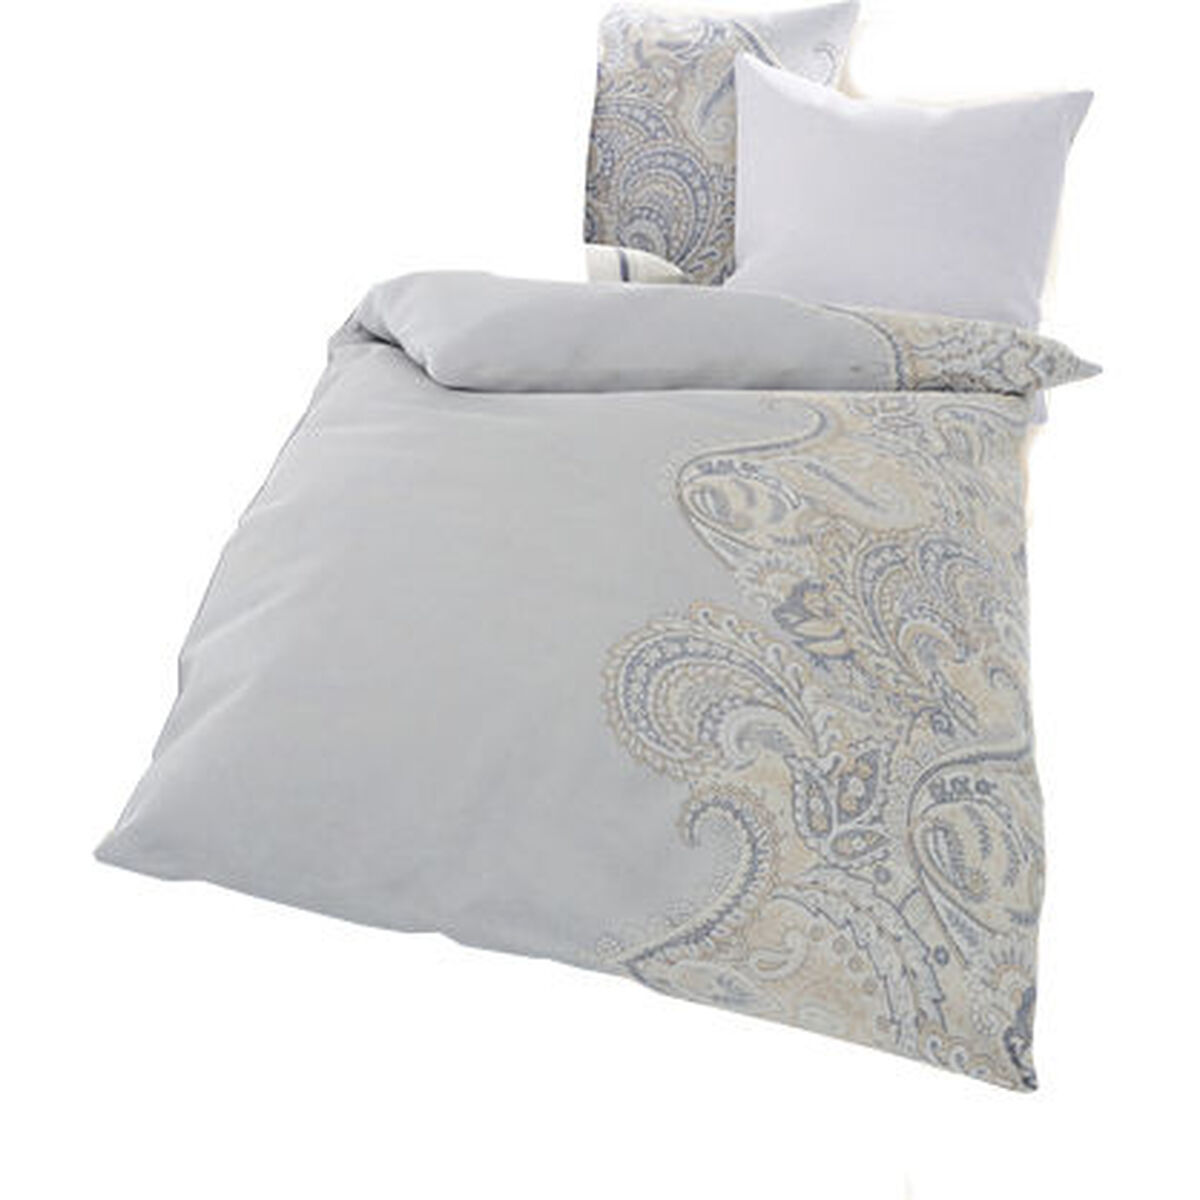 ido collection biber bettw sche paisley hellgrau 135x200 cm karstadt online shop. Black Bedroom Furniture Sets. Home Design Ideas